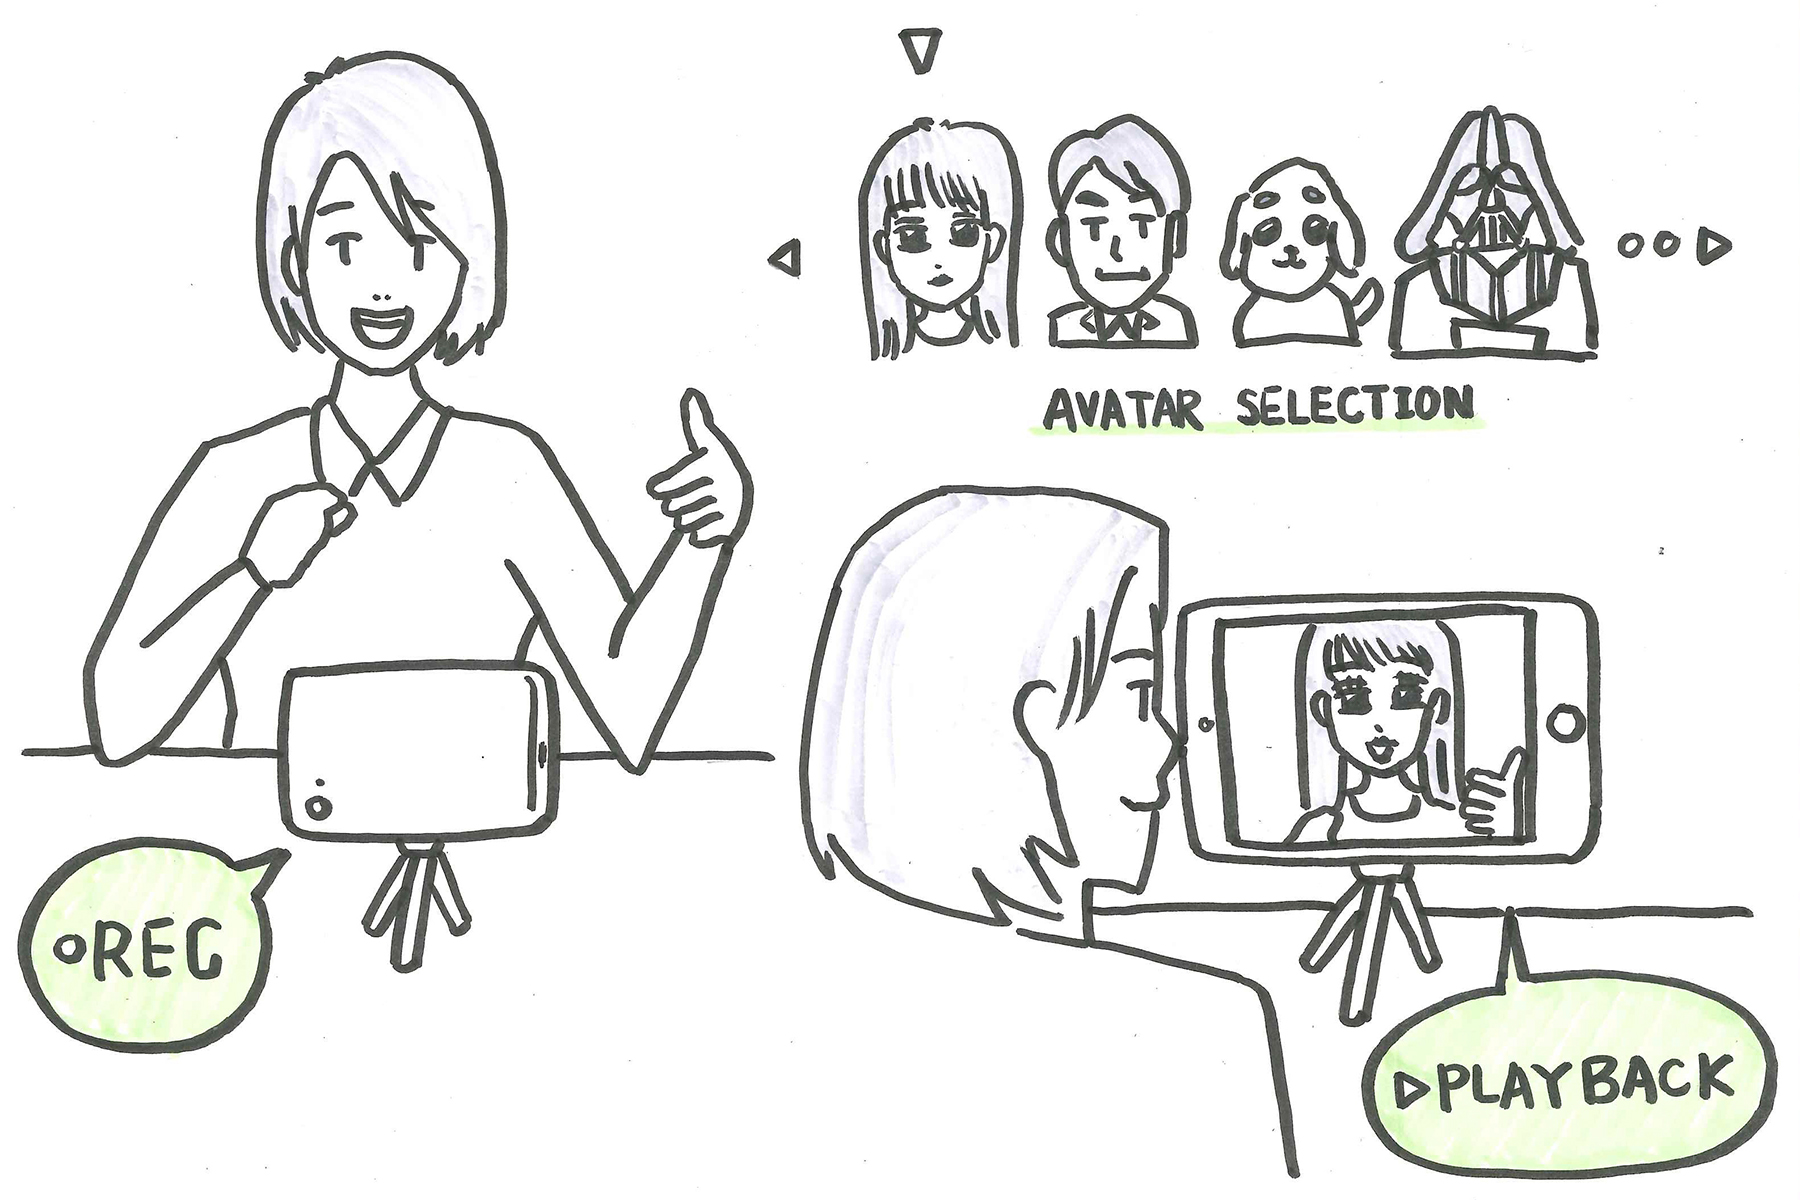 "Speech Avatar  By removing the ""self"" identifiers and replace it with fun filters, this tool makes it easier for people to do self-assessment by video recording speeches.    Feedback:  It could be a fun add-on, but might be too shallow without a framework for self-assessment."